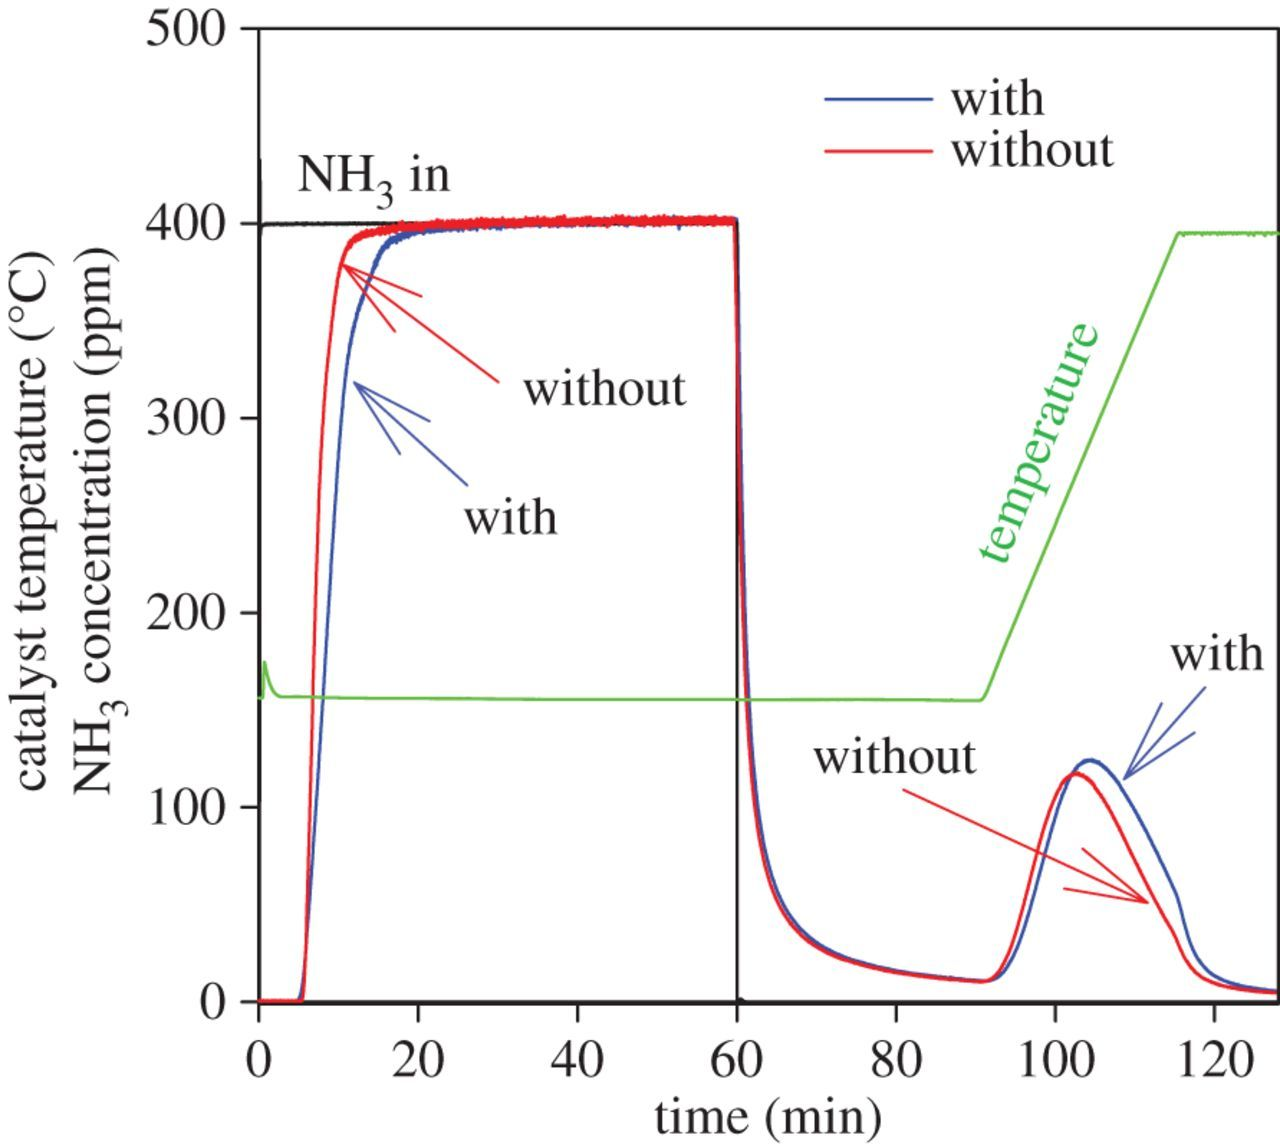 The effect of soot on ammonium nitrate species and NO2